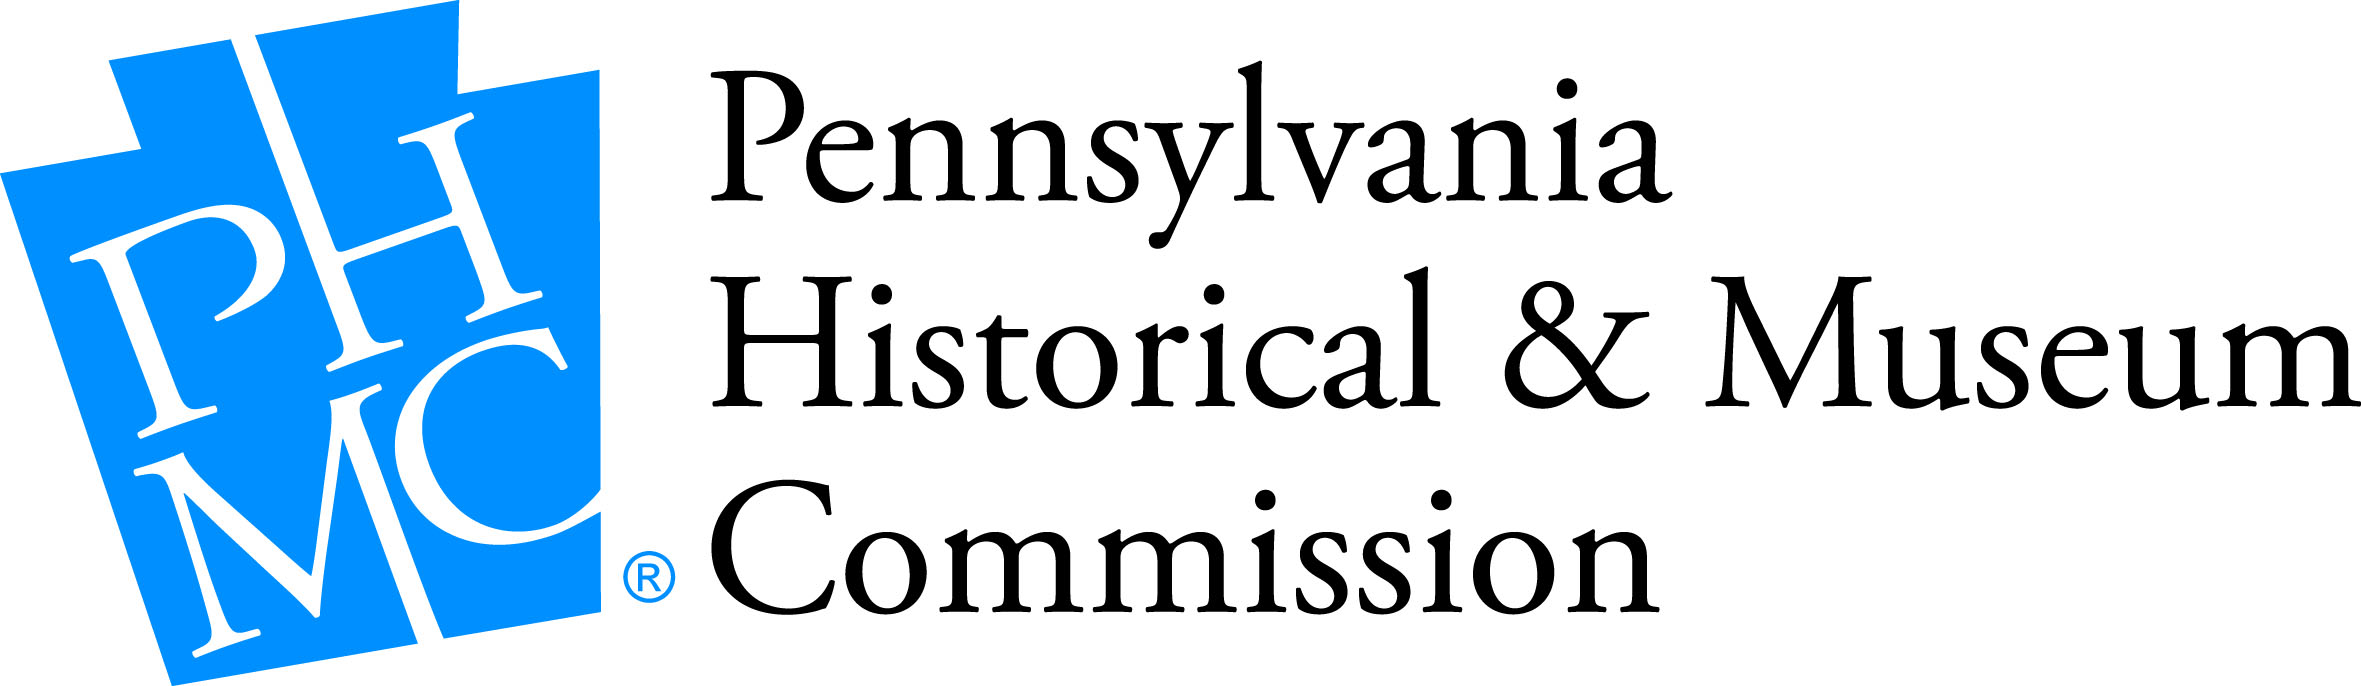 Image result for pennsylvania historical and museum commission logo